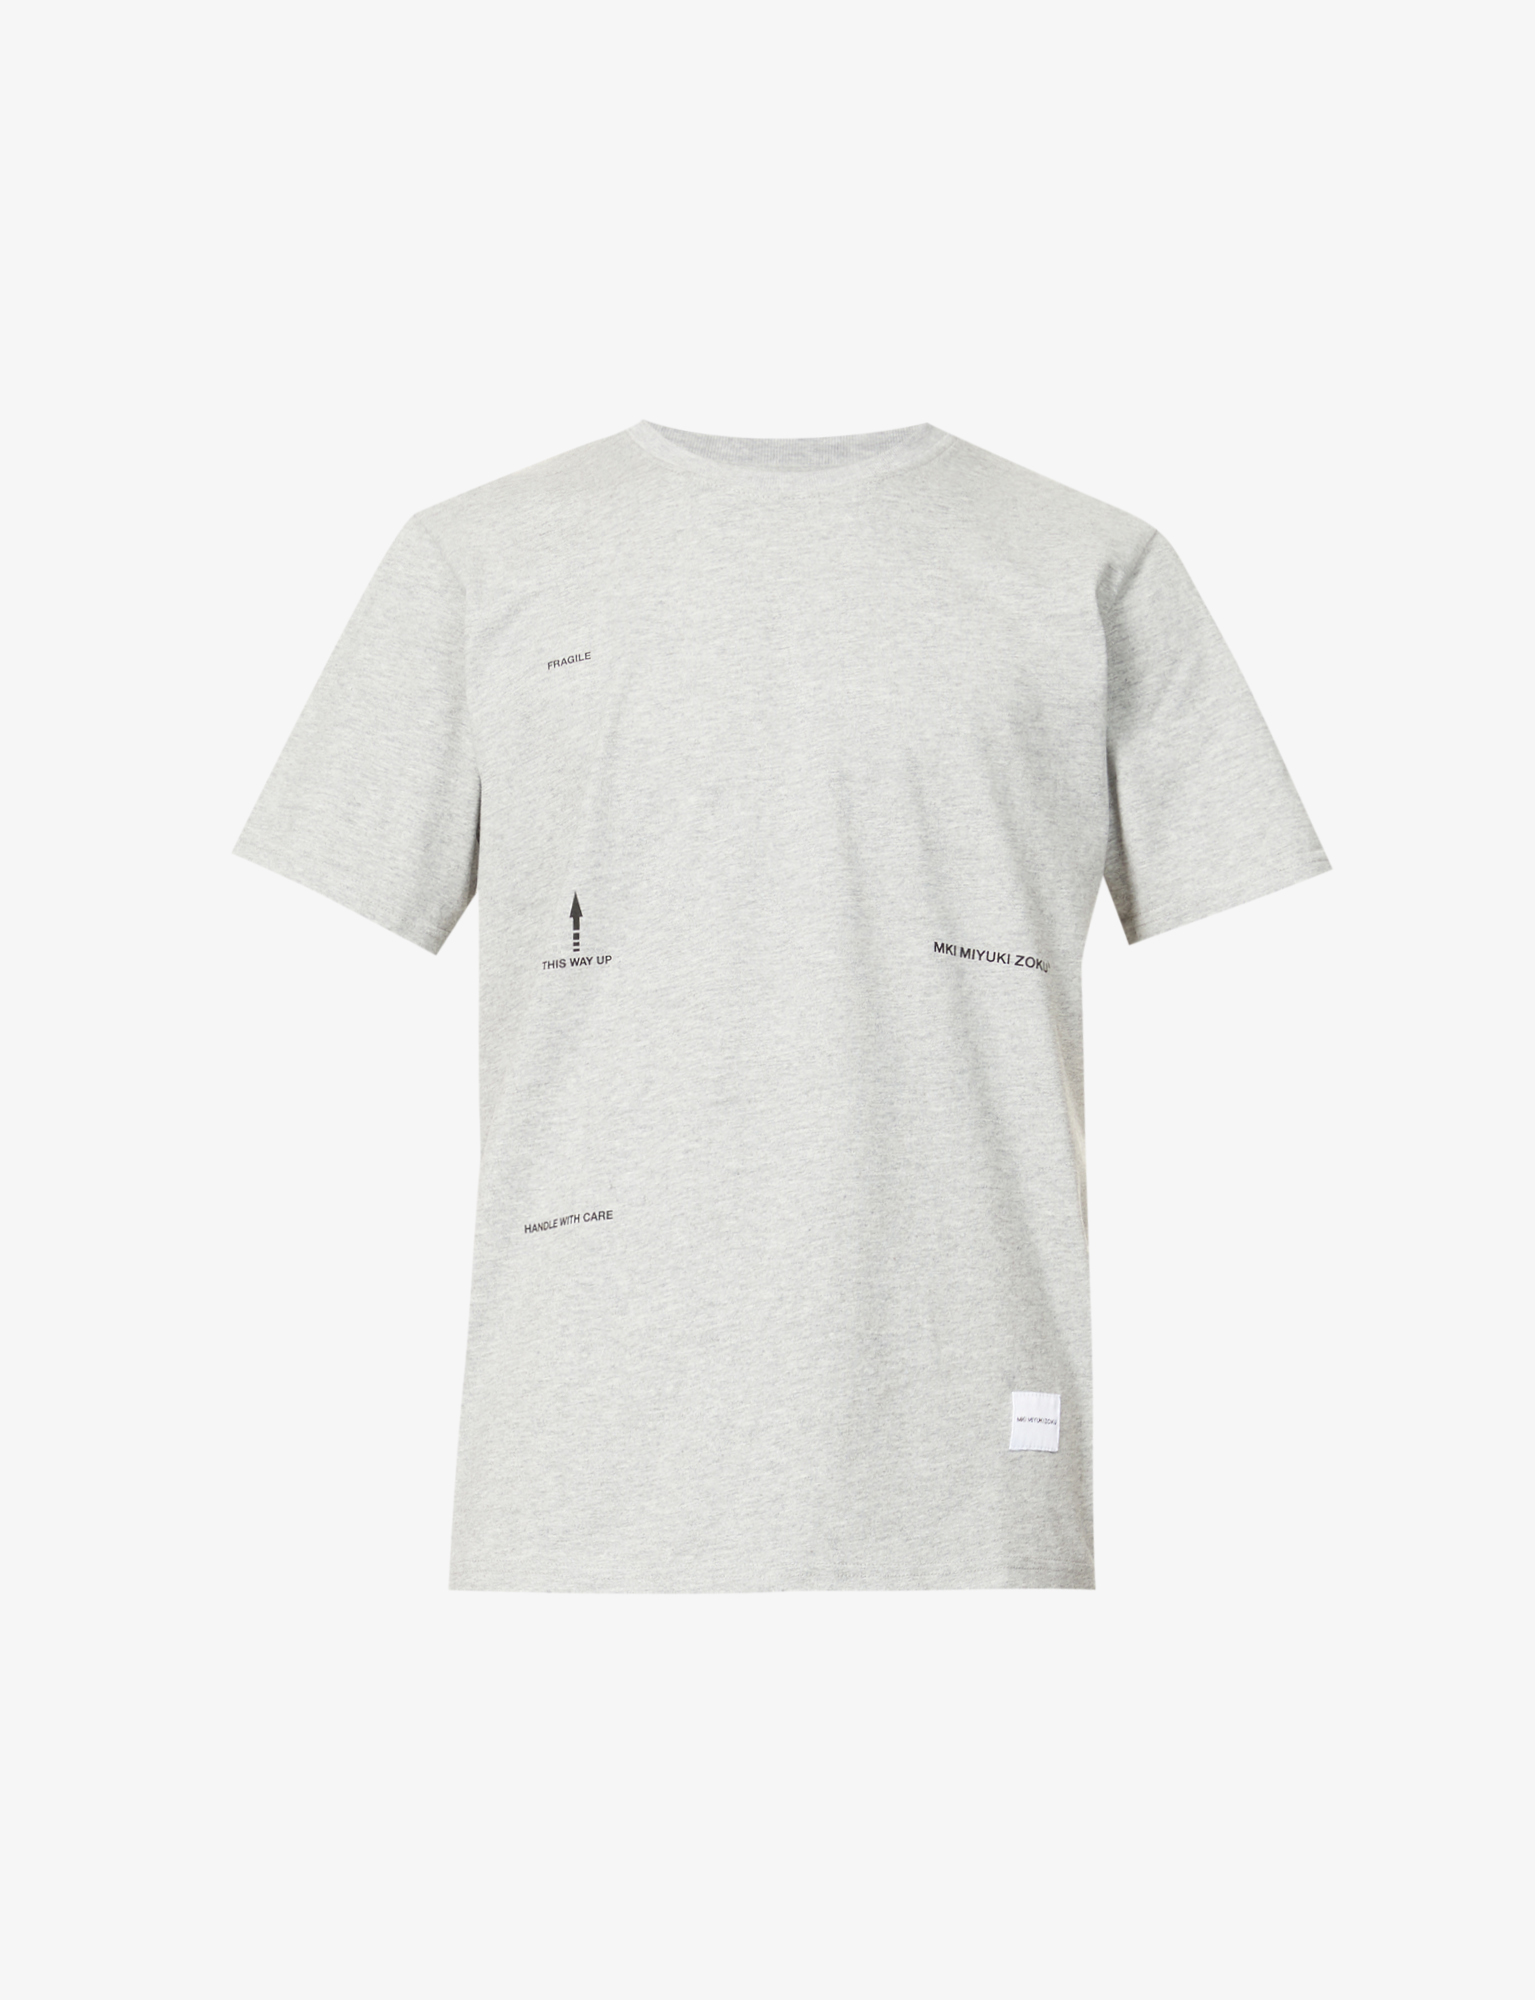 MKI EXCL ROYAL MAIL TEE GREY